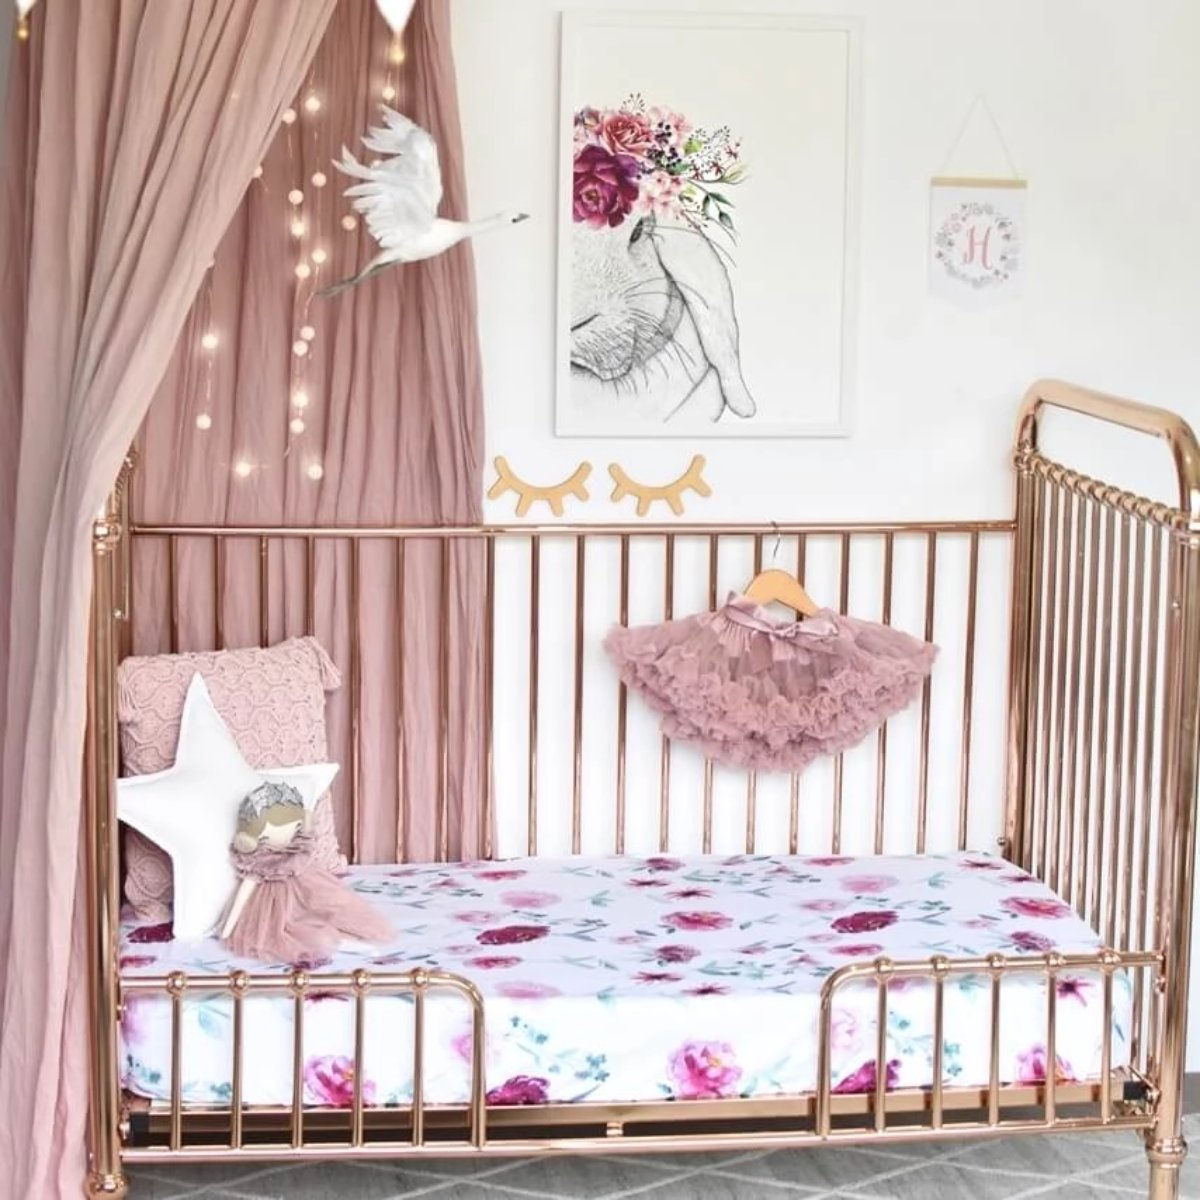 US stockist of Snuggle Hunny Kids Wanderlust crib sheet